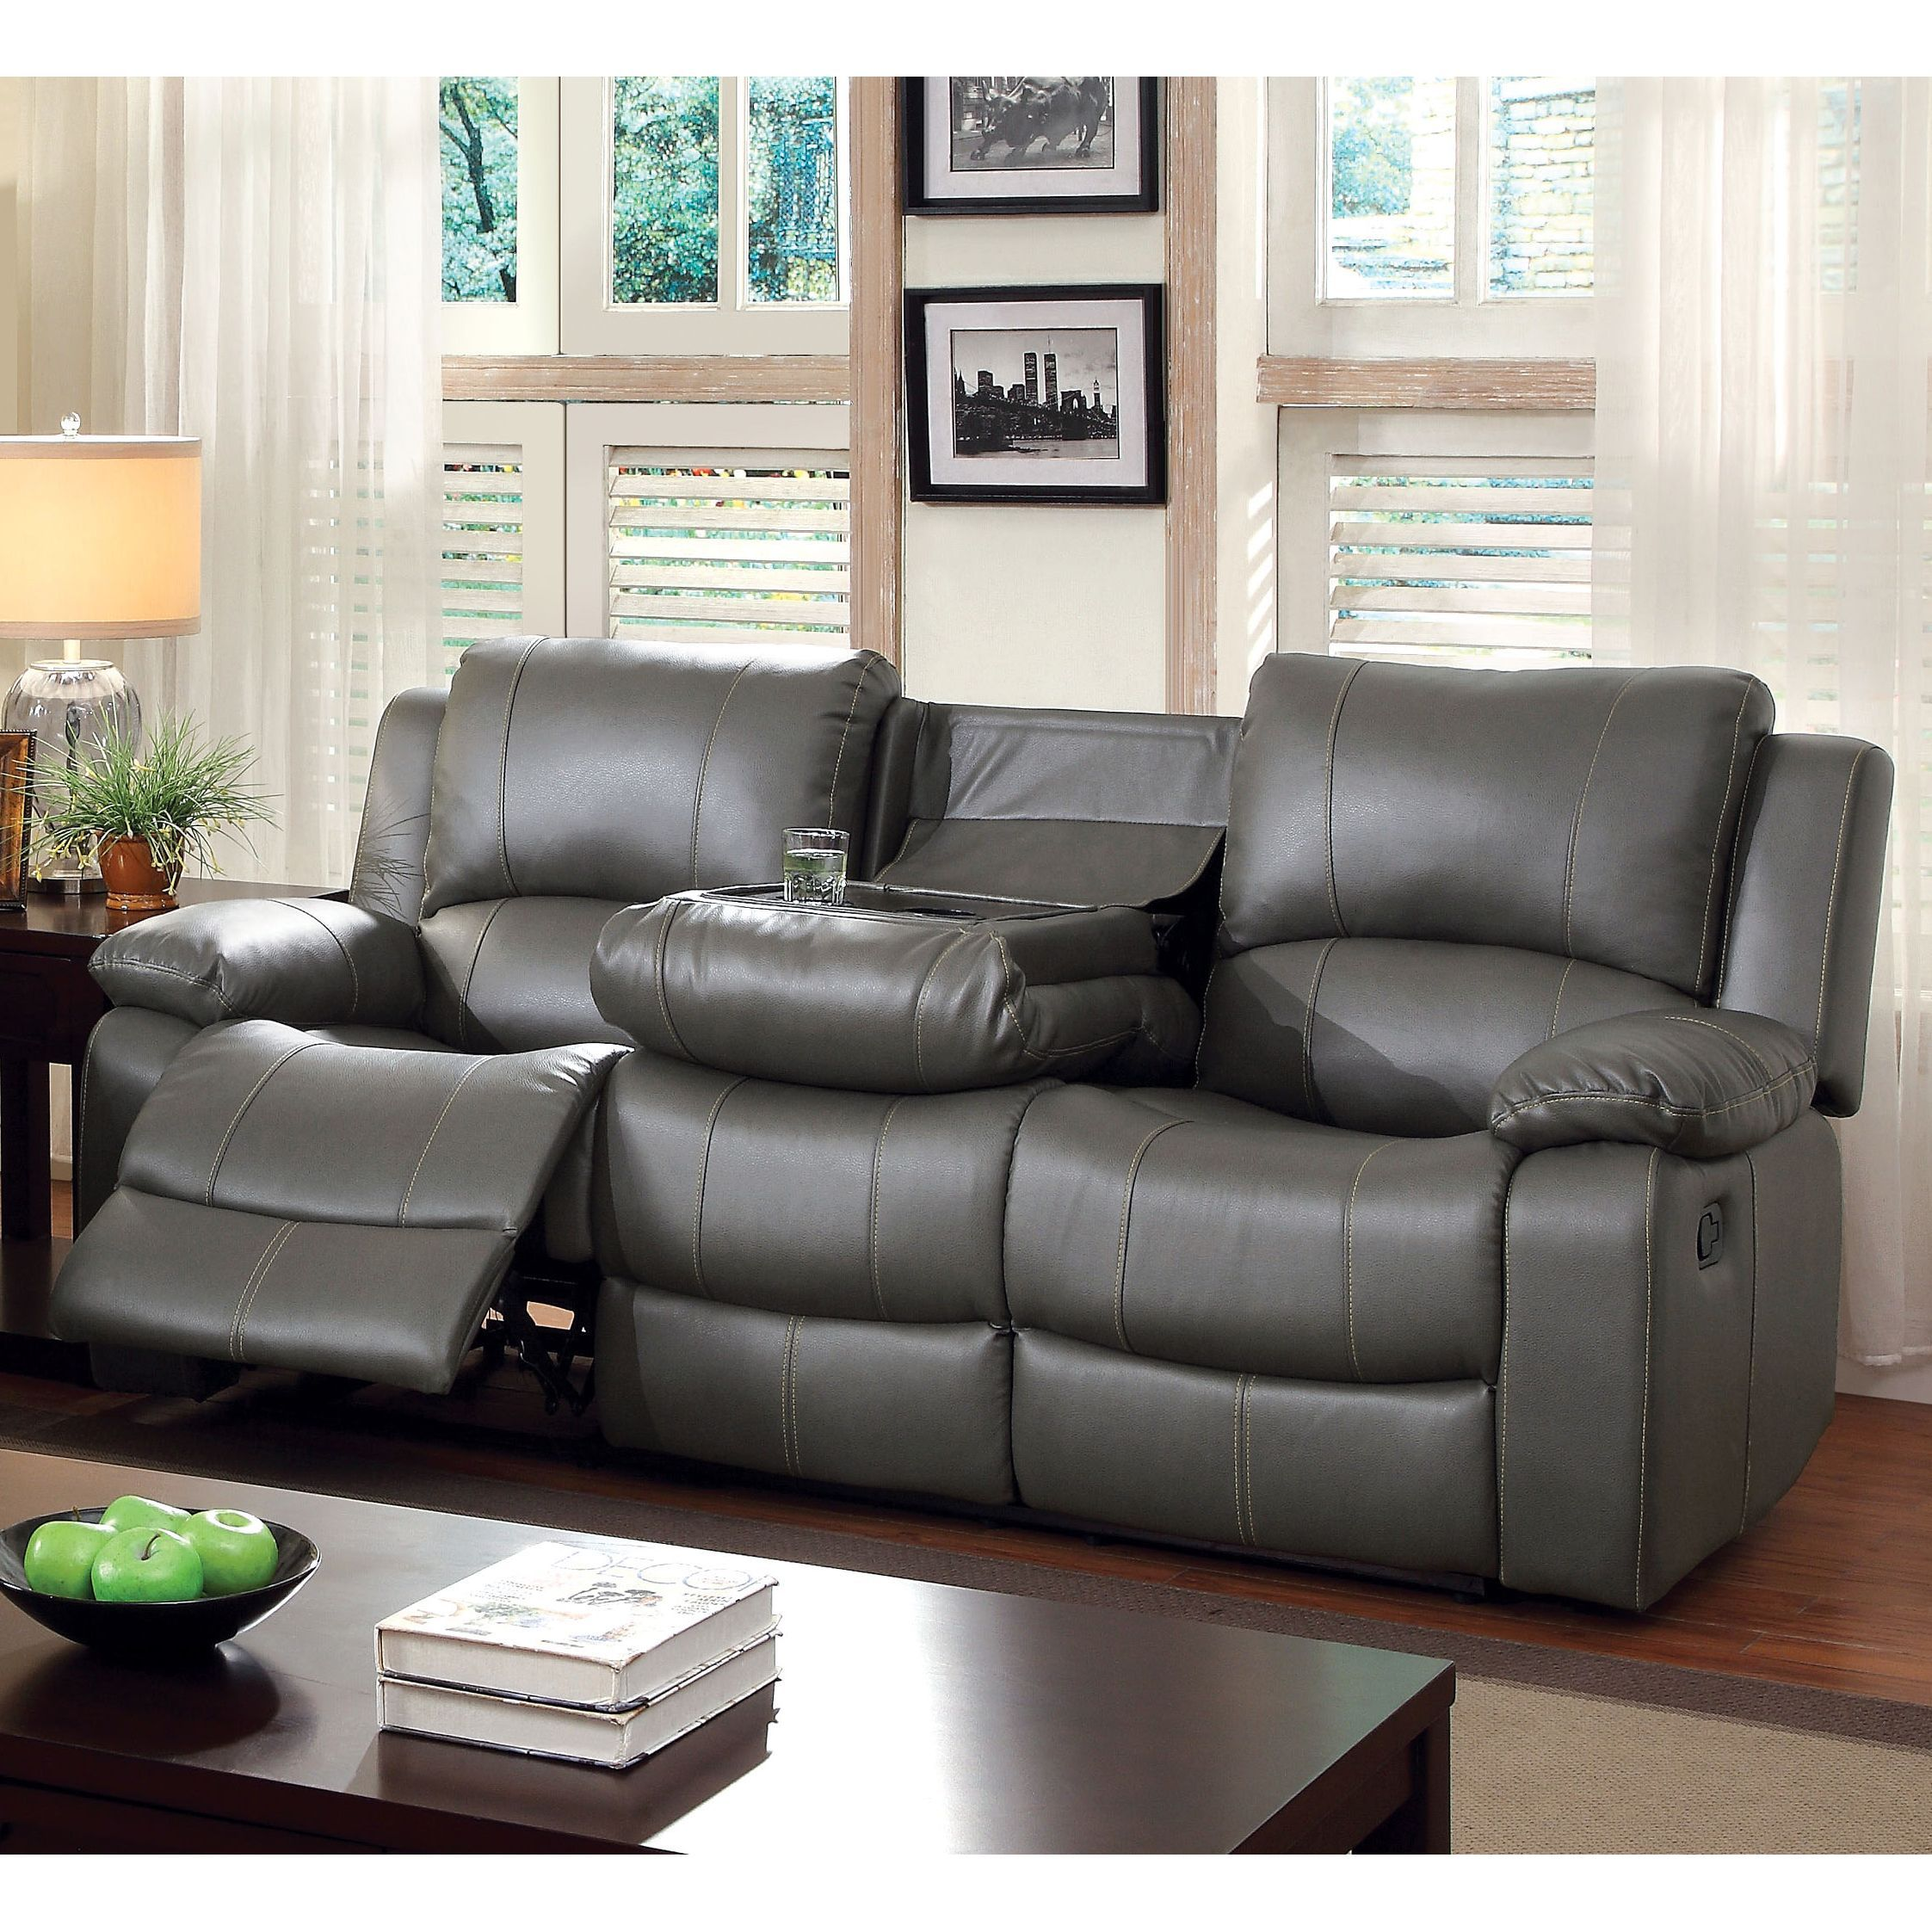 sofa gray color baxton studio abriana 2 piece dark brown leather sectional furniture of america rembren grey bonded reclining